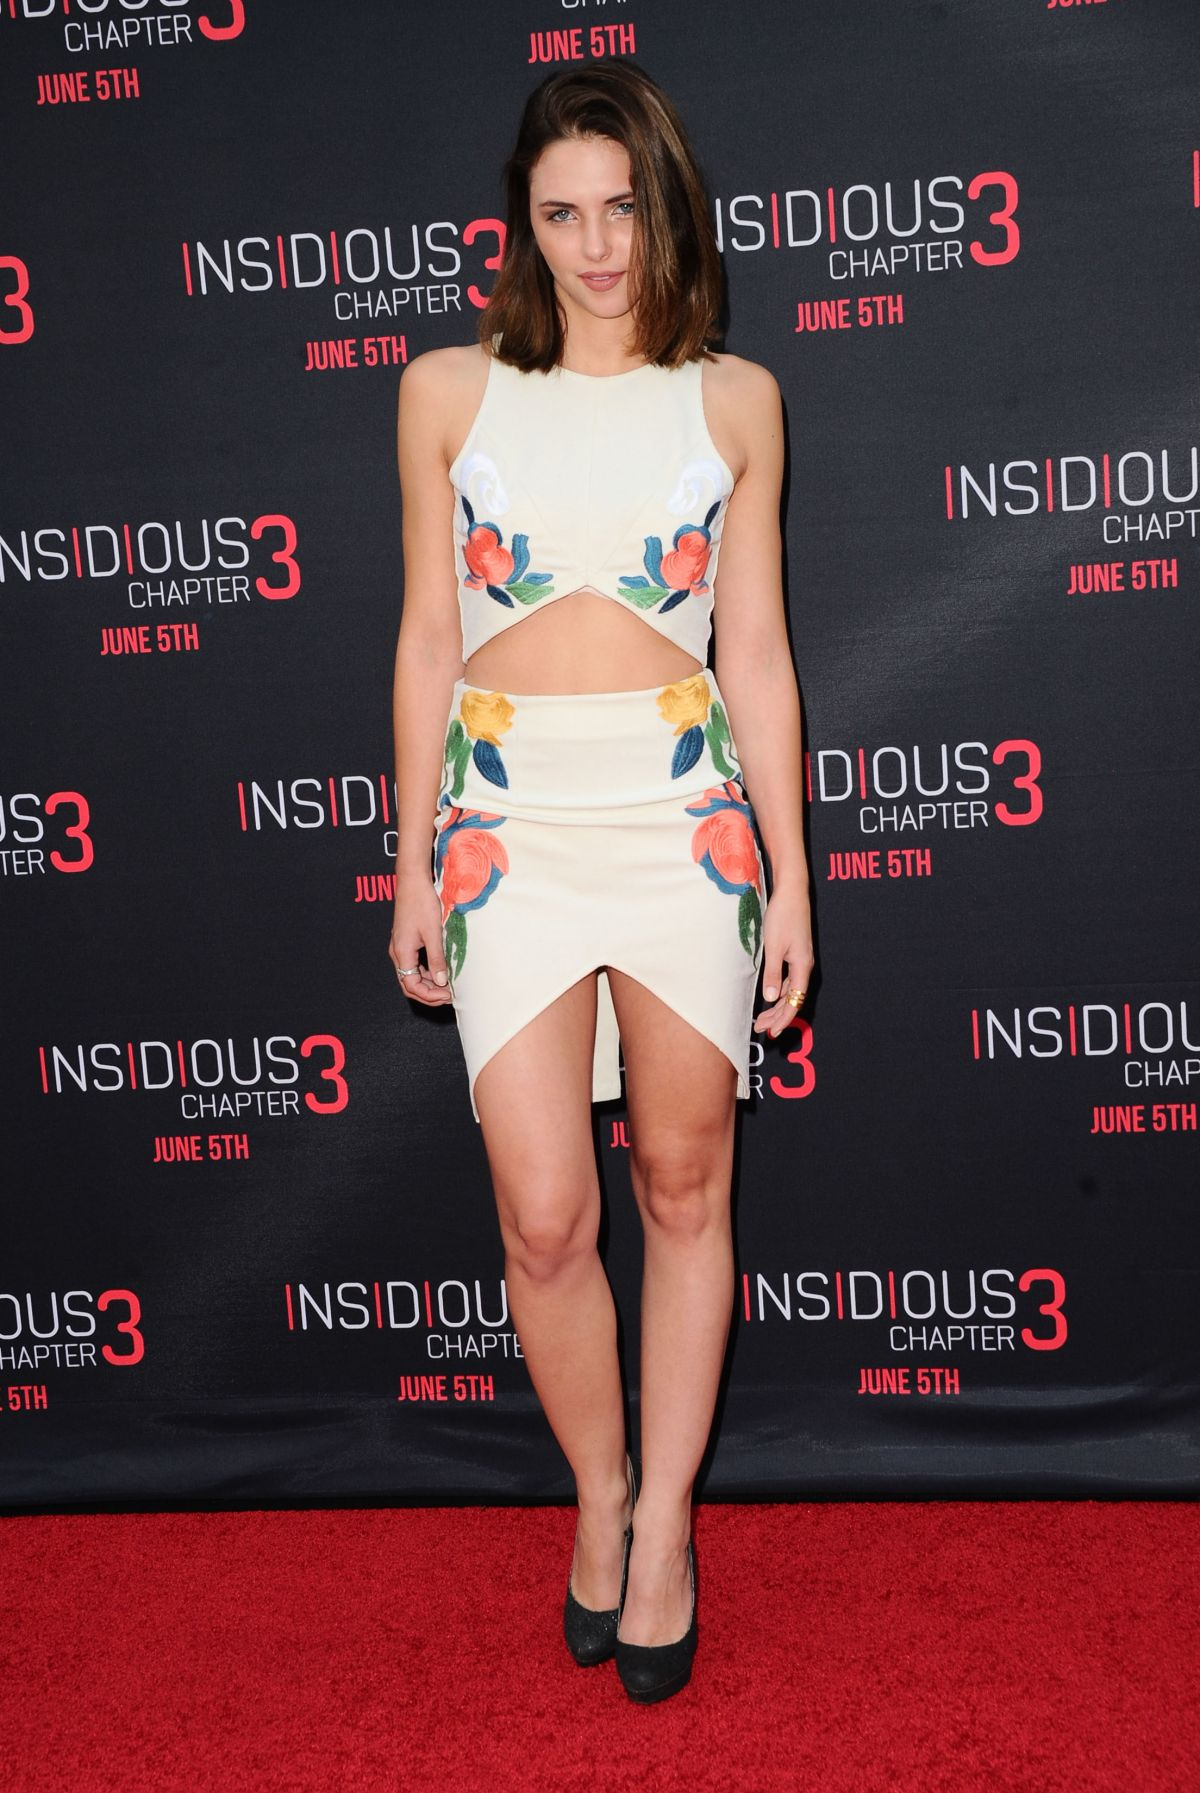 SIDNEY ALLISON at Insidious Chapter 3 Premiere in Hollywood